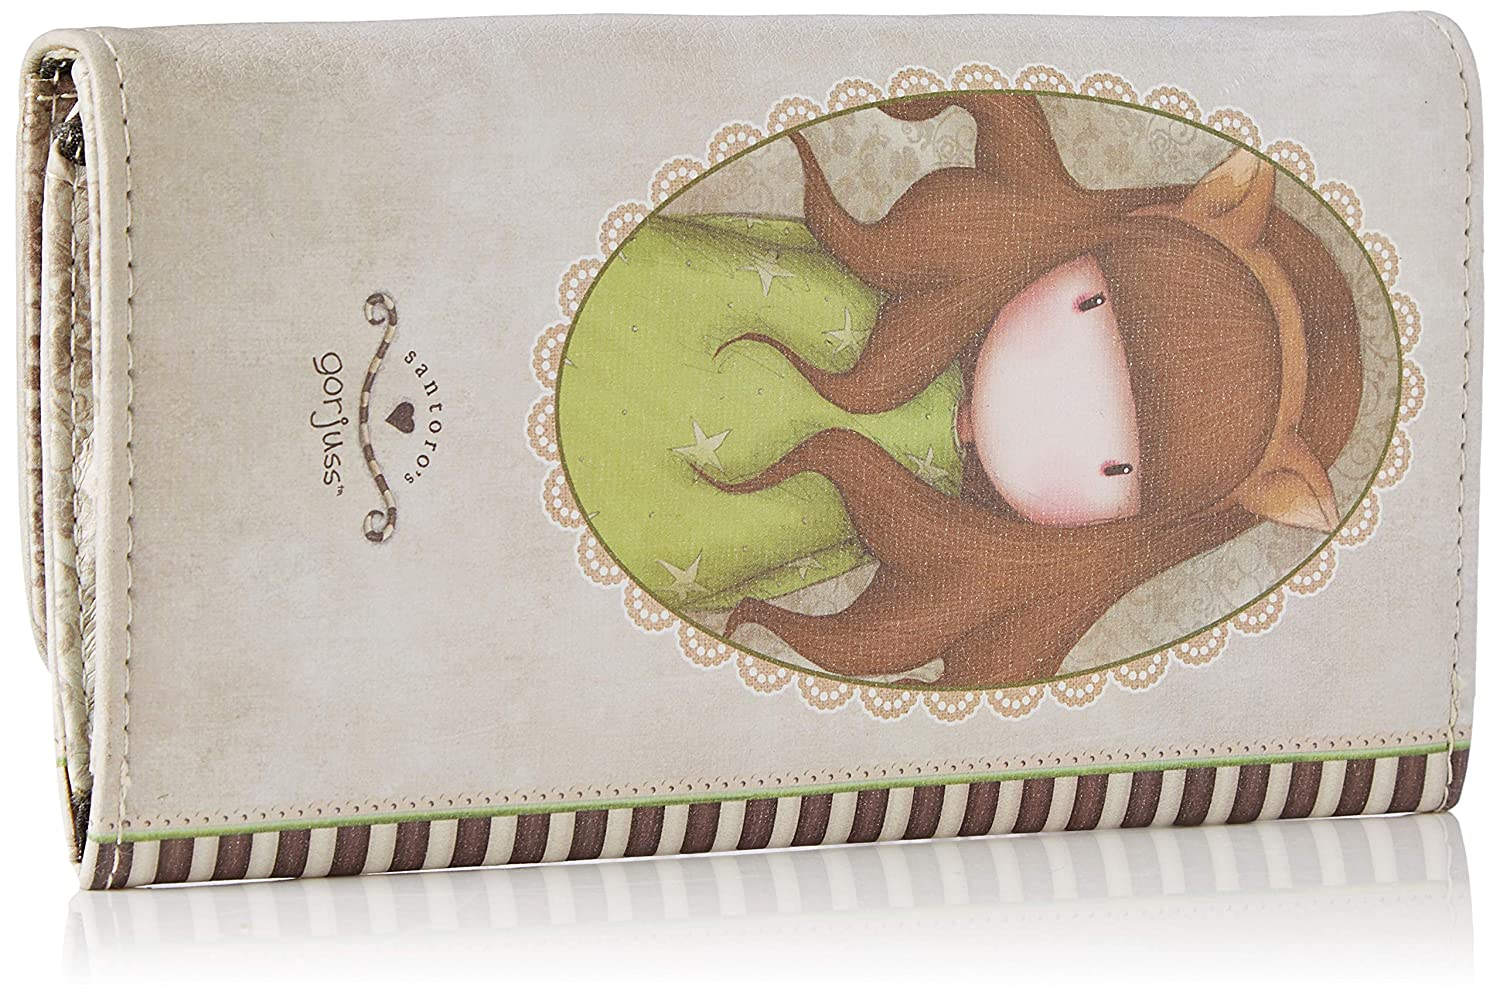 Amazon.com: Santoro Gorjuss The Fox Wallet Green